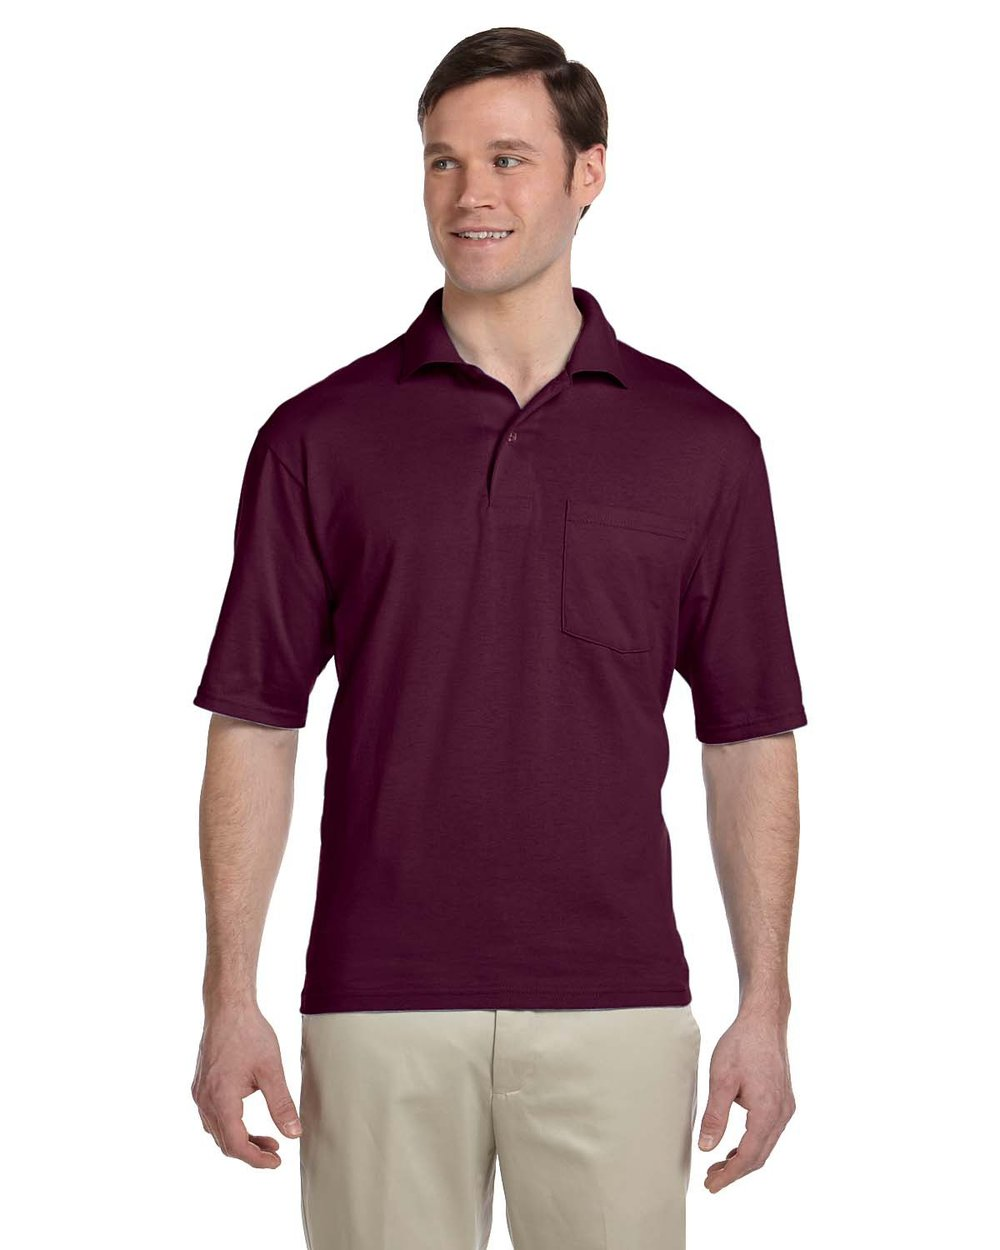 50/50 Pocket Jersey Polo #436P